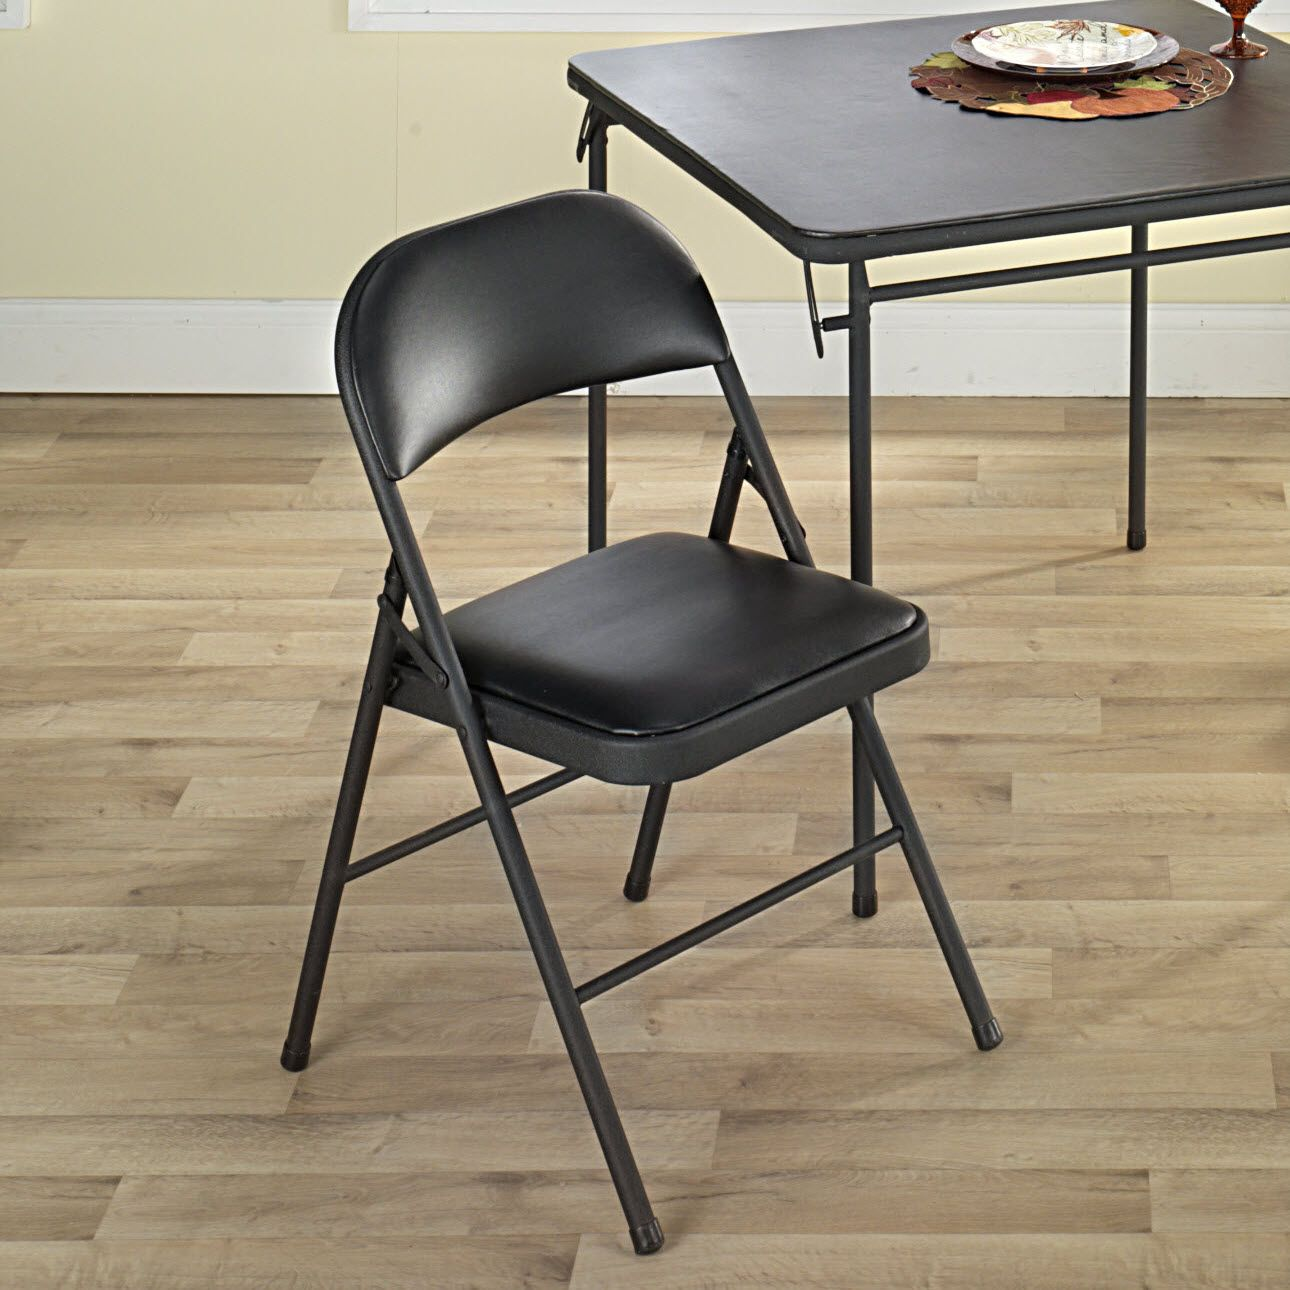 Cosco Home and Office Products Vinyl Folding Chair